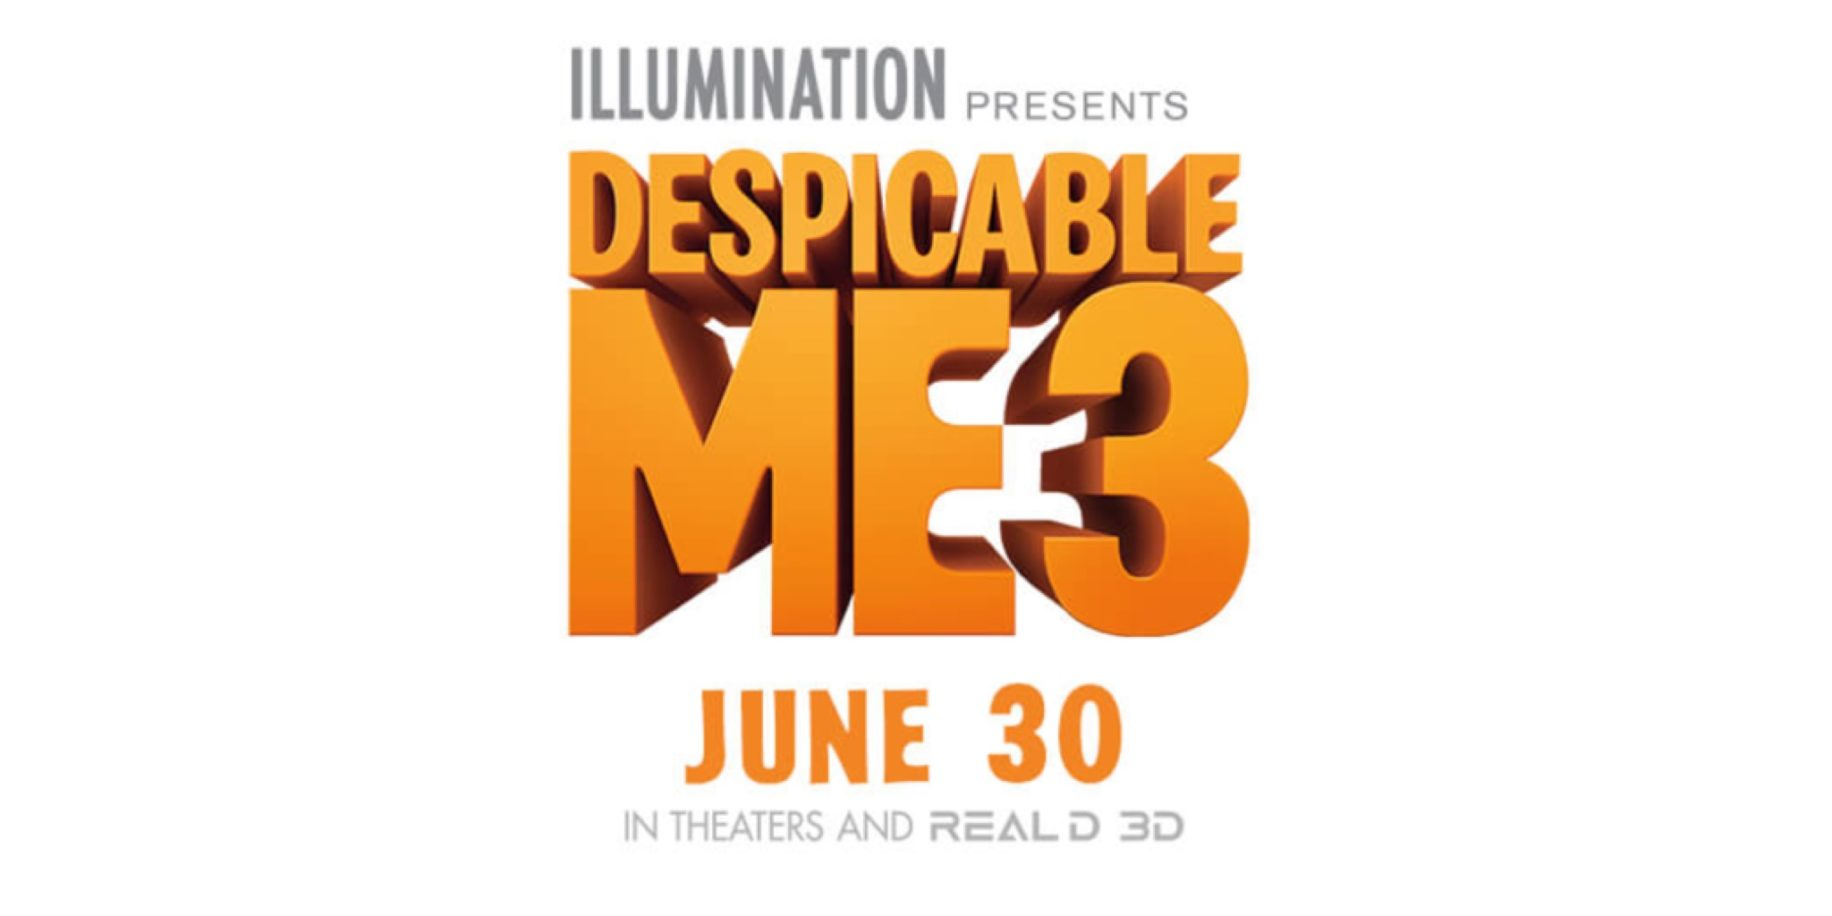 9 Things Parents Should Know About 'Despicable Me 3'